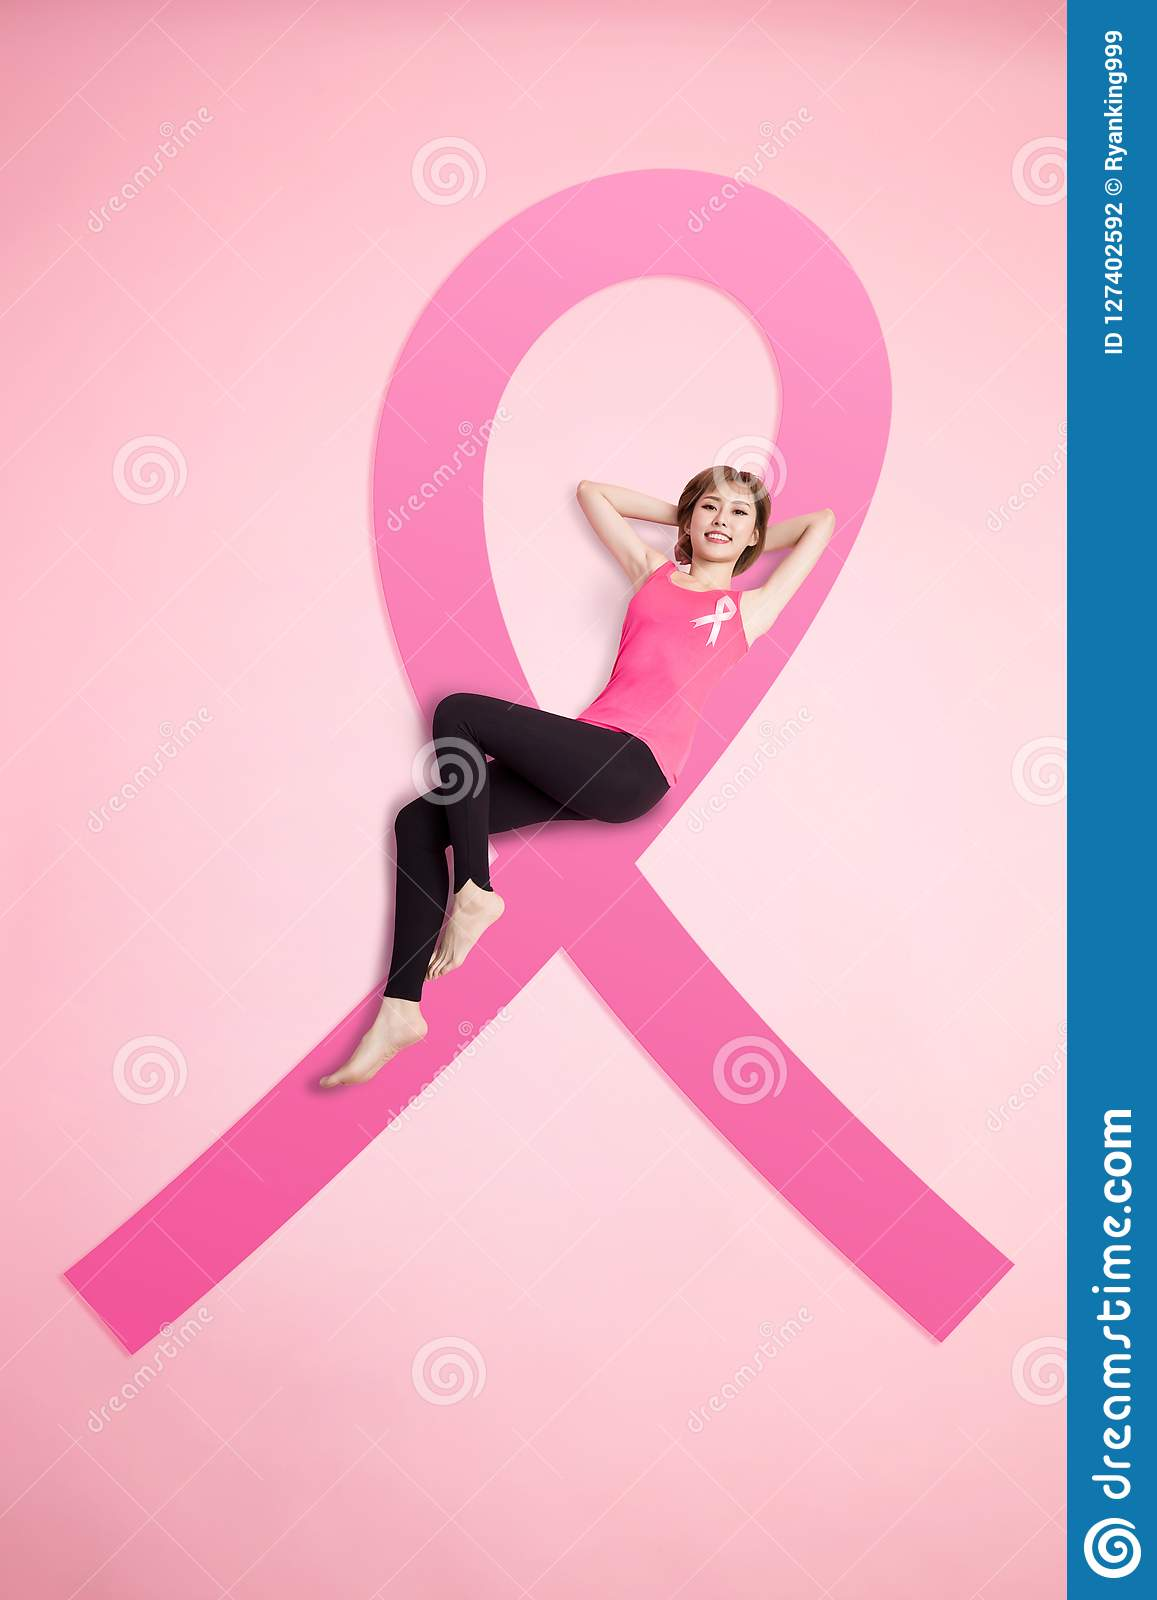 Prevention breast cancer concept